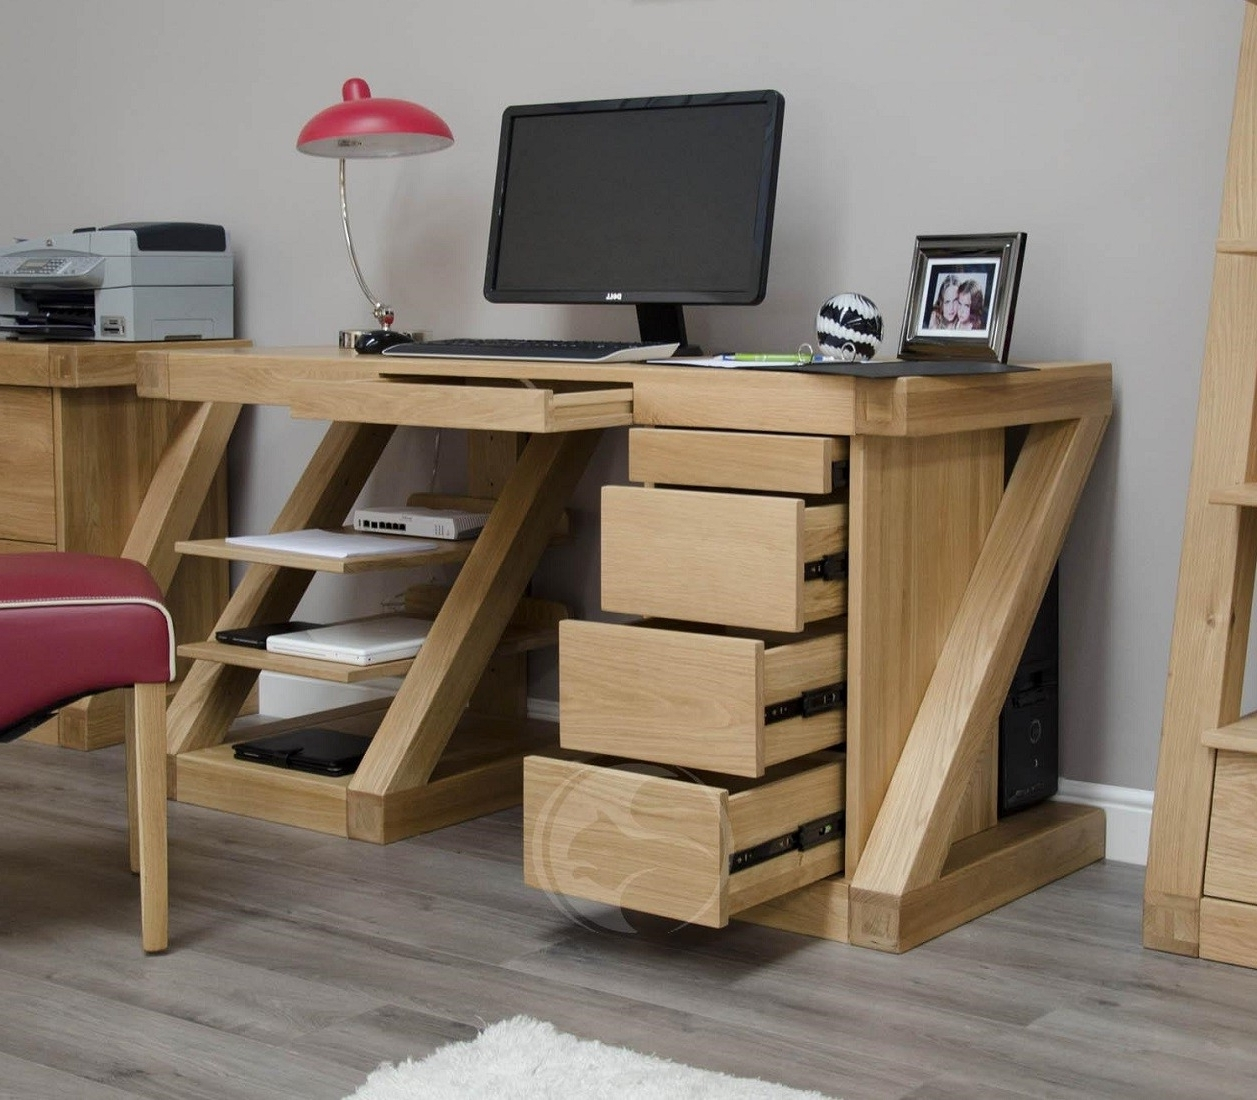 Oak Furniture Uk Throughout Large Computer Desks (View 17 of 20)